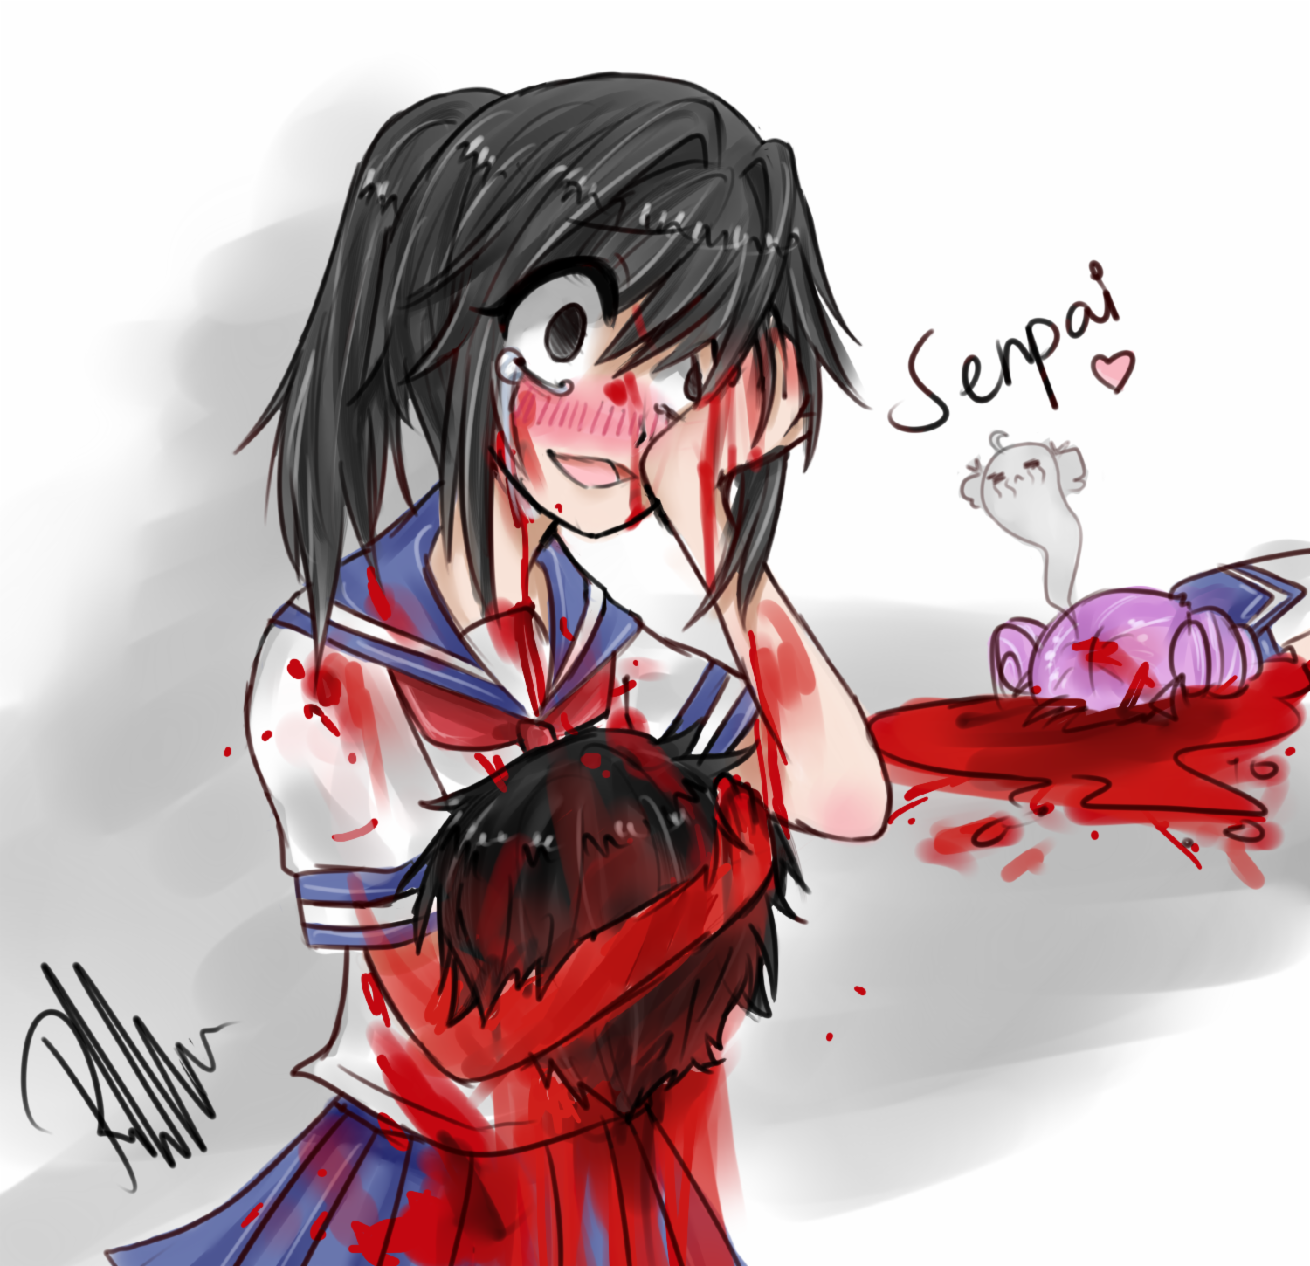 what do you think yandere simulator's ending will be like ?